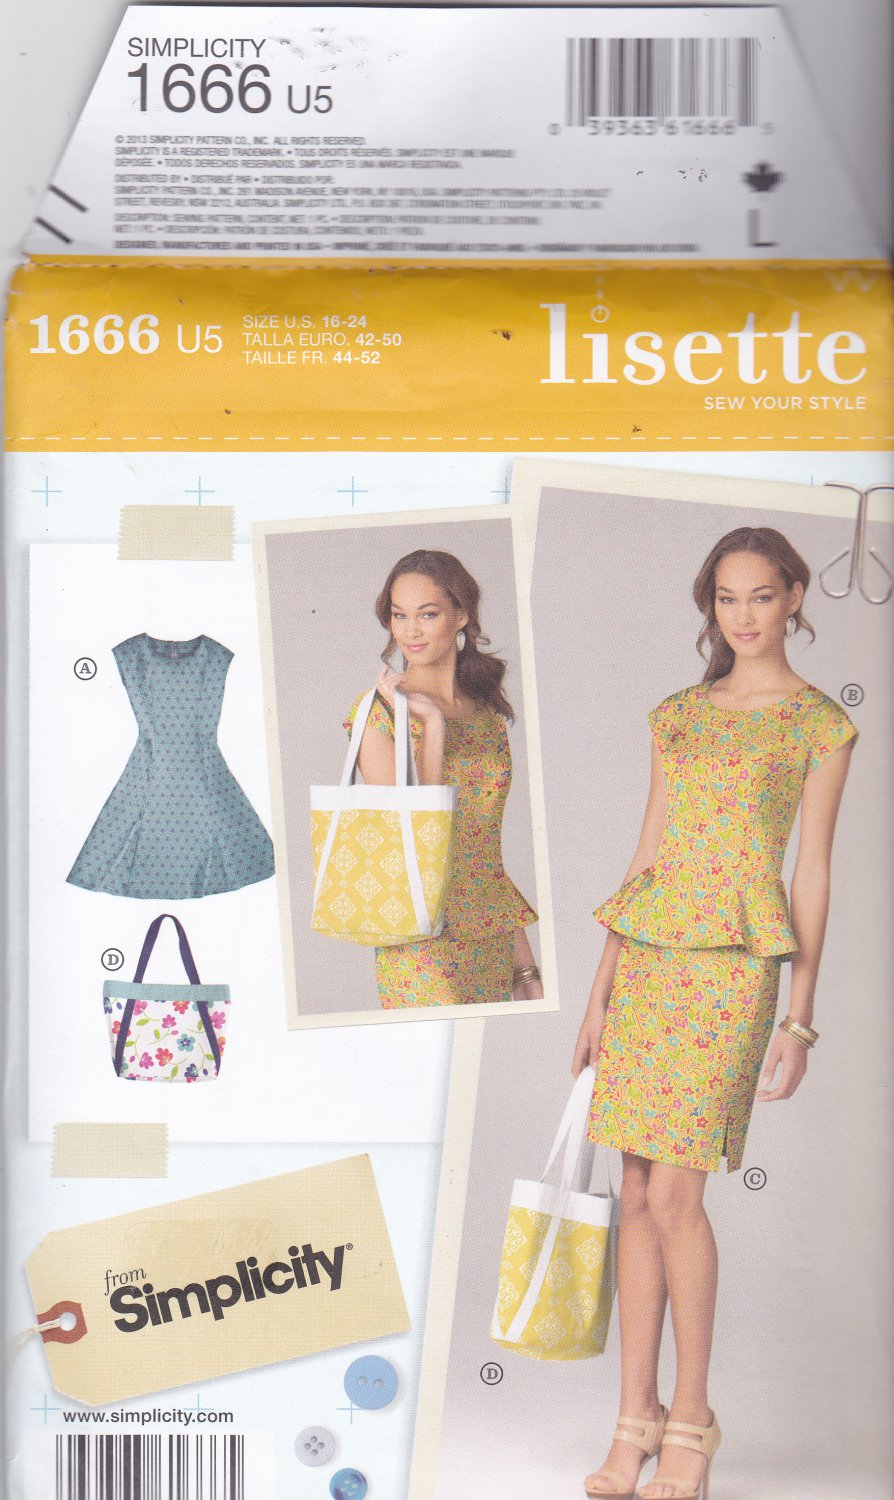 Simplicity 1666 Pattern Uncut FF 16 18 20 22 24 plus Lisette Dress Peplum Top Skirt Bag